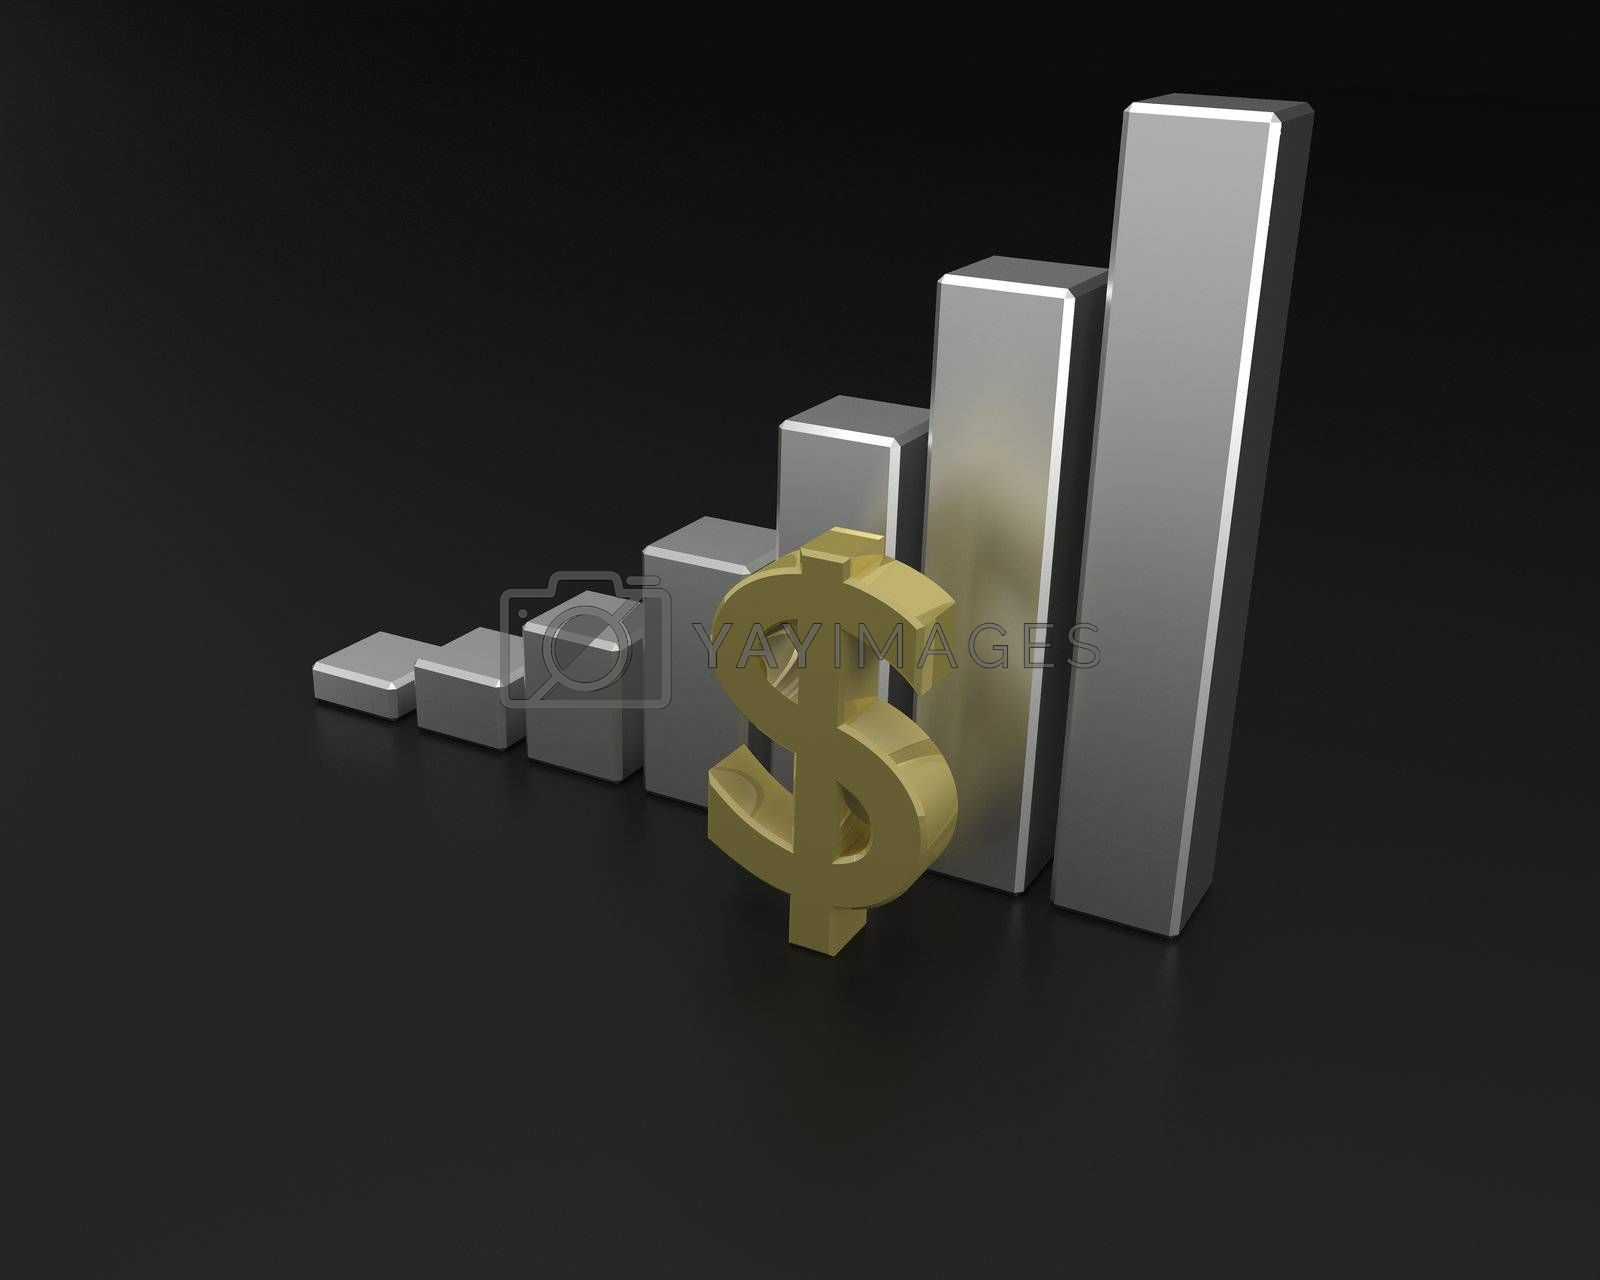 Royalty free image of Dollar financial graph by Fornax